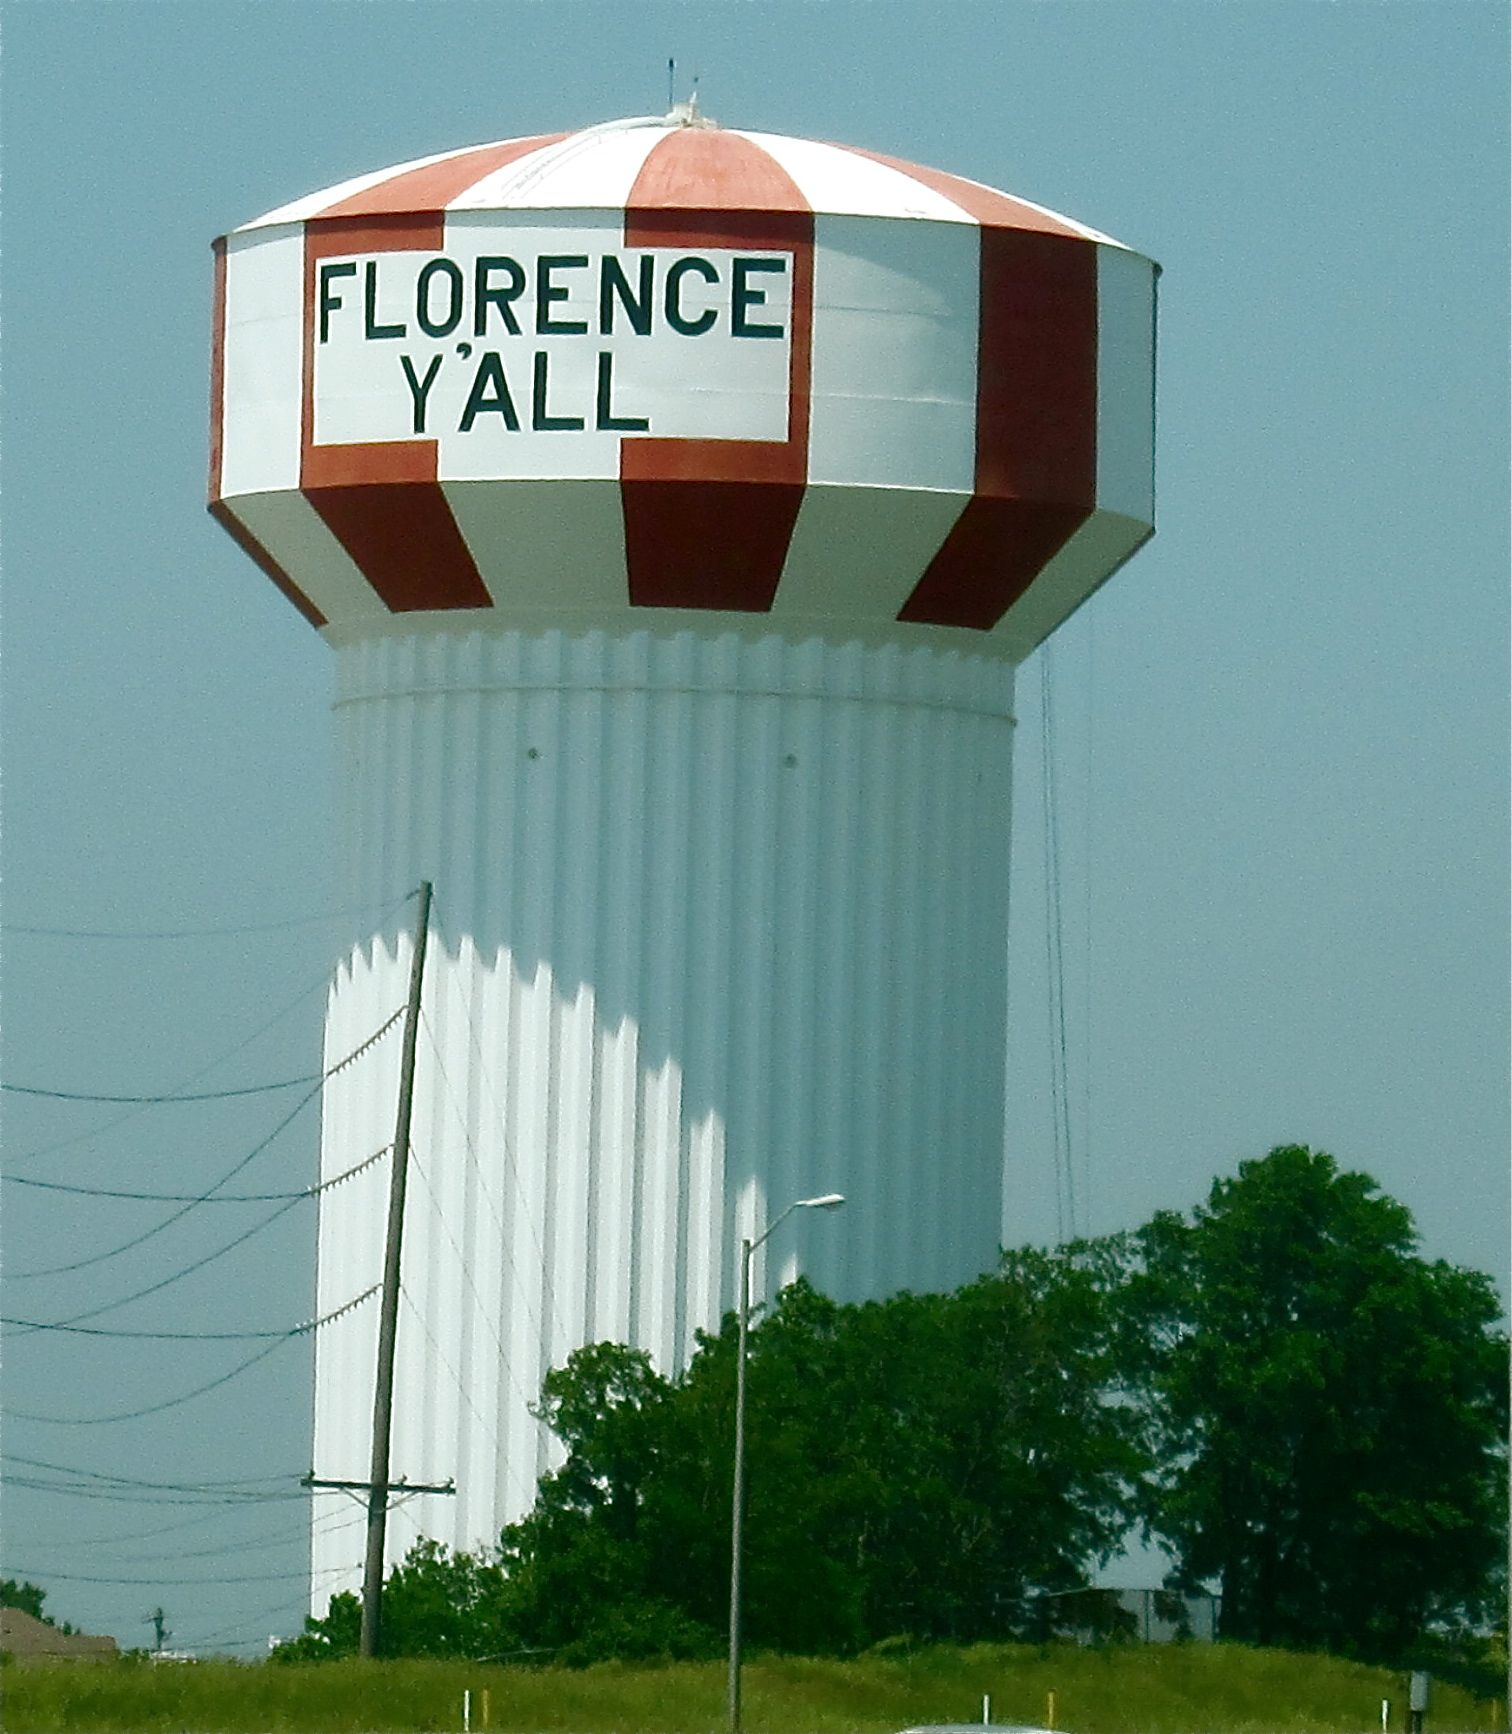 Places To Visit In Northern Ky: Florence Y'All Watertower (Florence, KY)